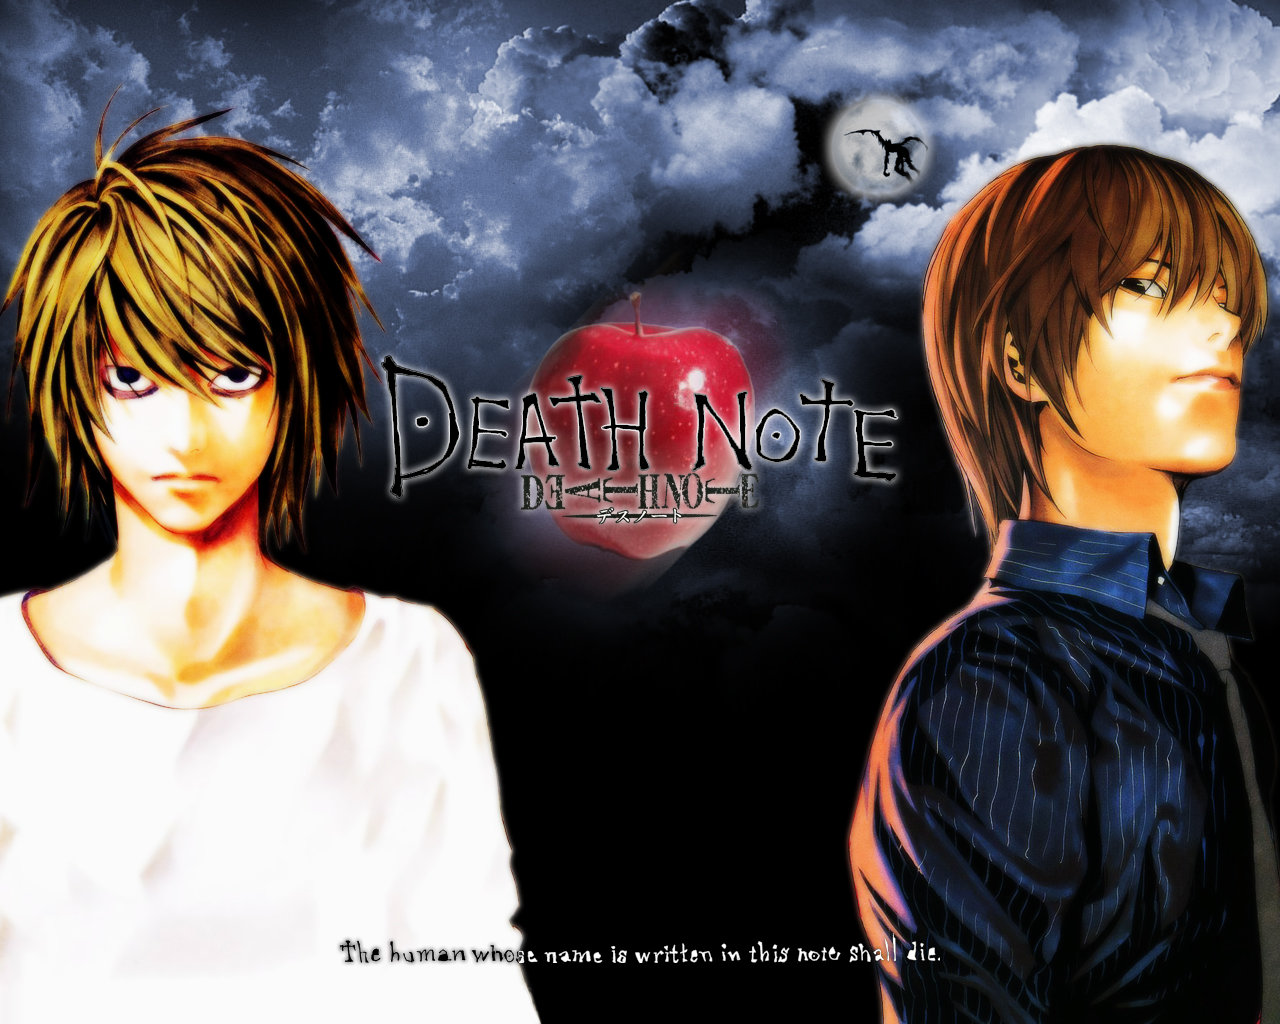 Download hd 1280x1024 Death Note desktop background ID:402630 for free